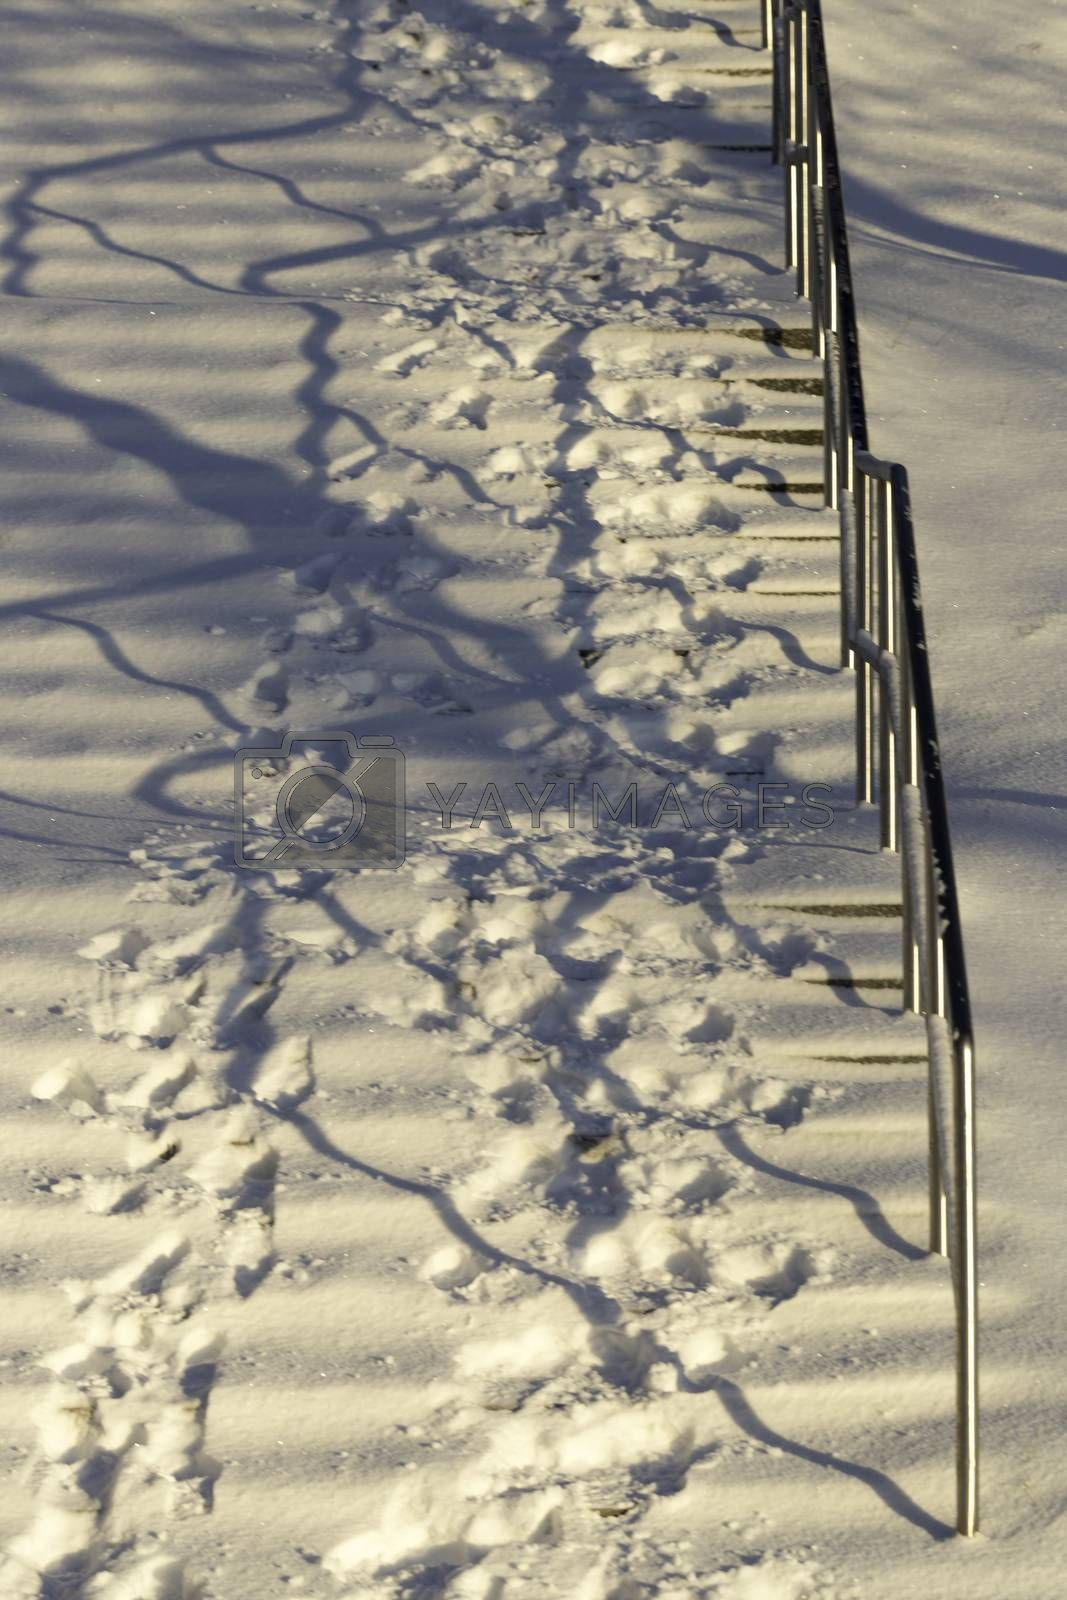 Footsteps in Snow up Stairs in winter.